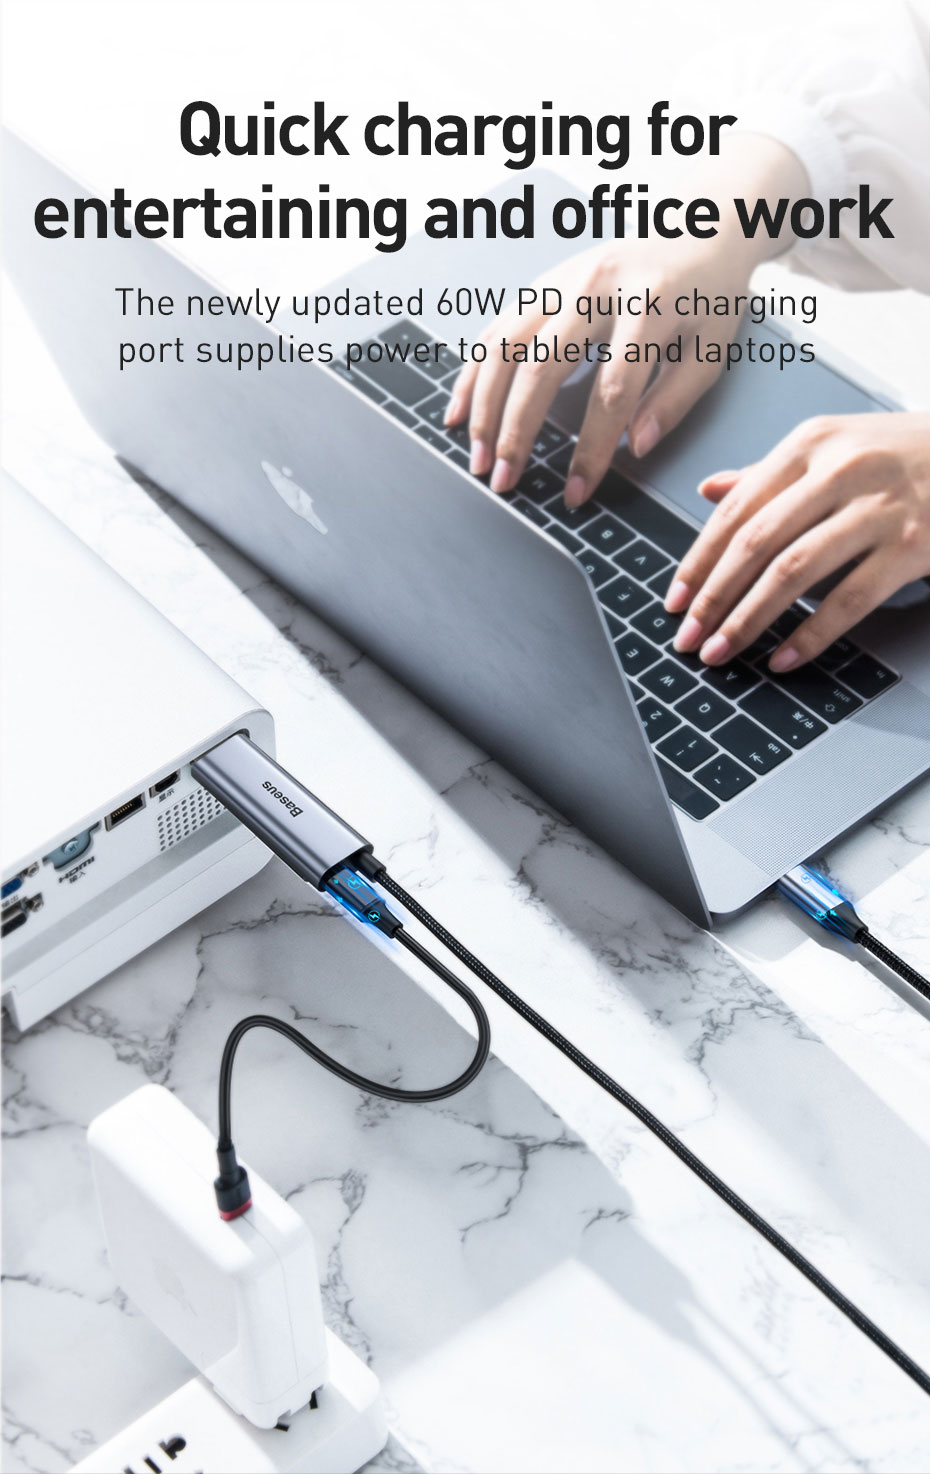 Baseus Type-C USB-C Adapter Converter To 4K/HD Display + Type-C Port PD Fast Charging Max 60W For Type-C Smart Phone Samsung Huawei Tablet iPad Laptop MacBook